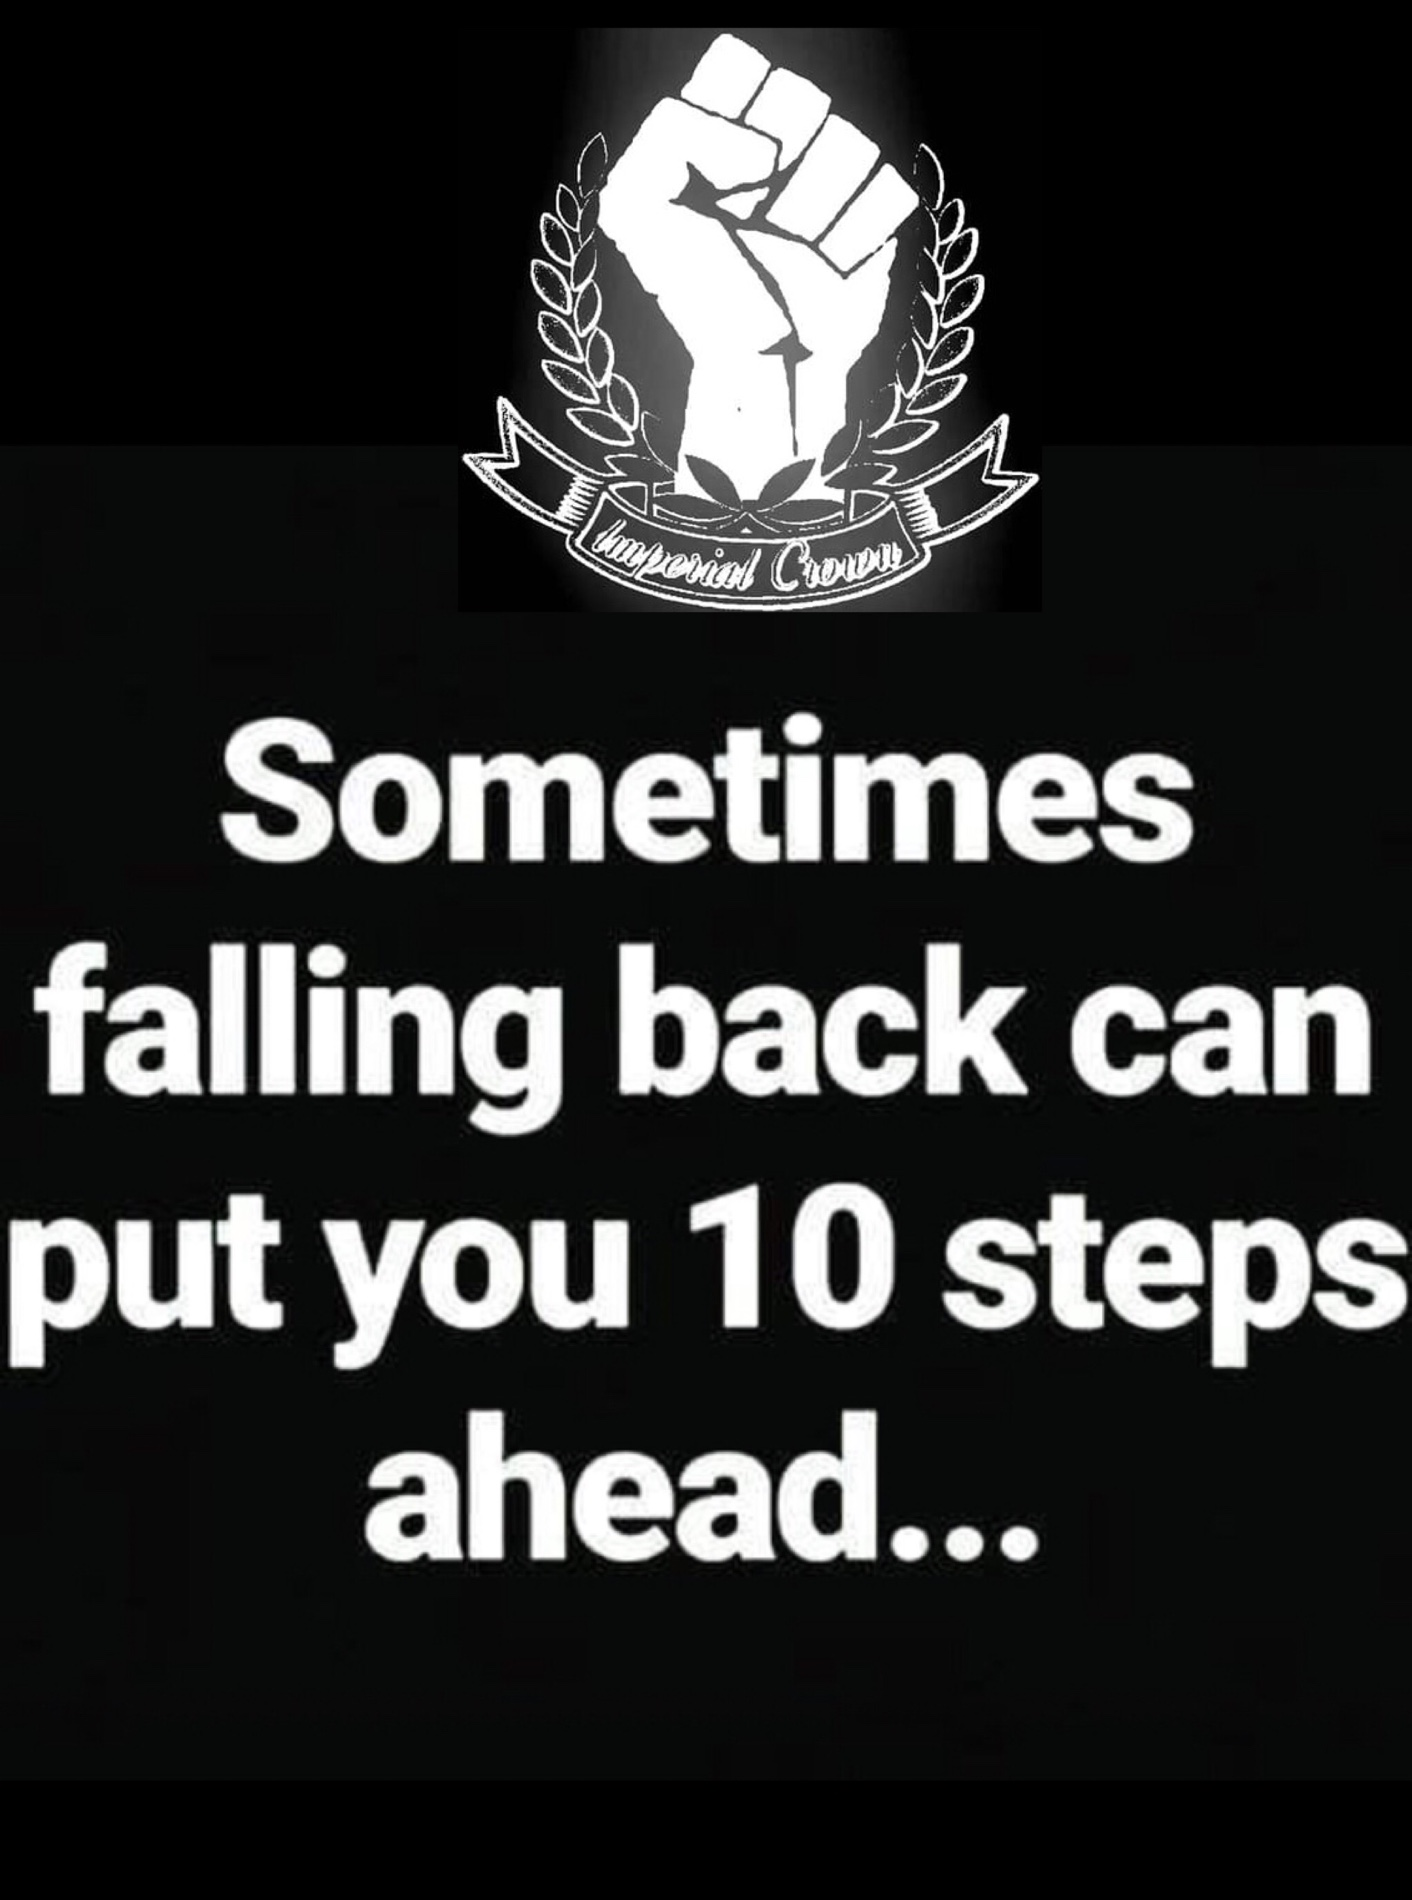 sometimes falling back can put you 10 steps ahead